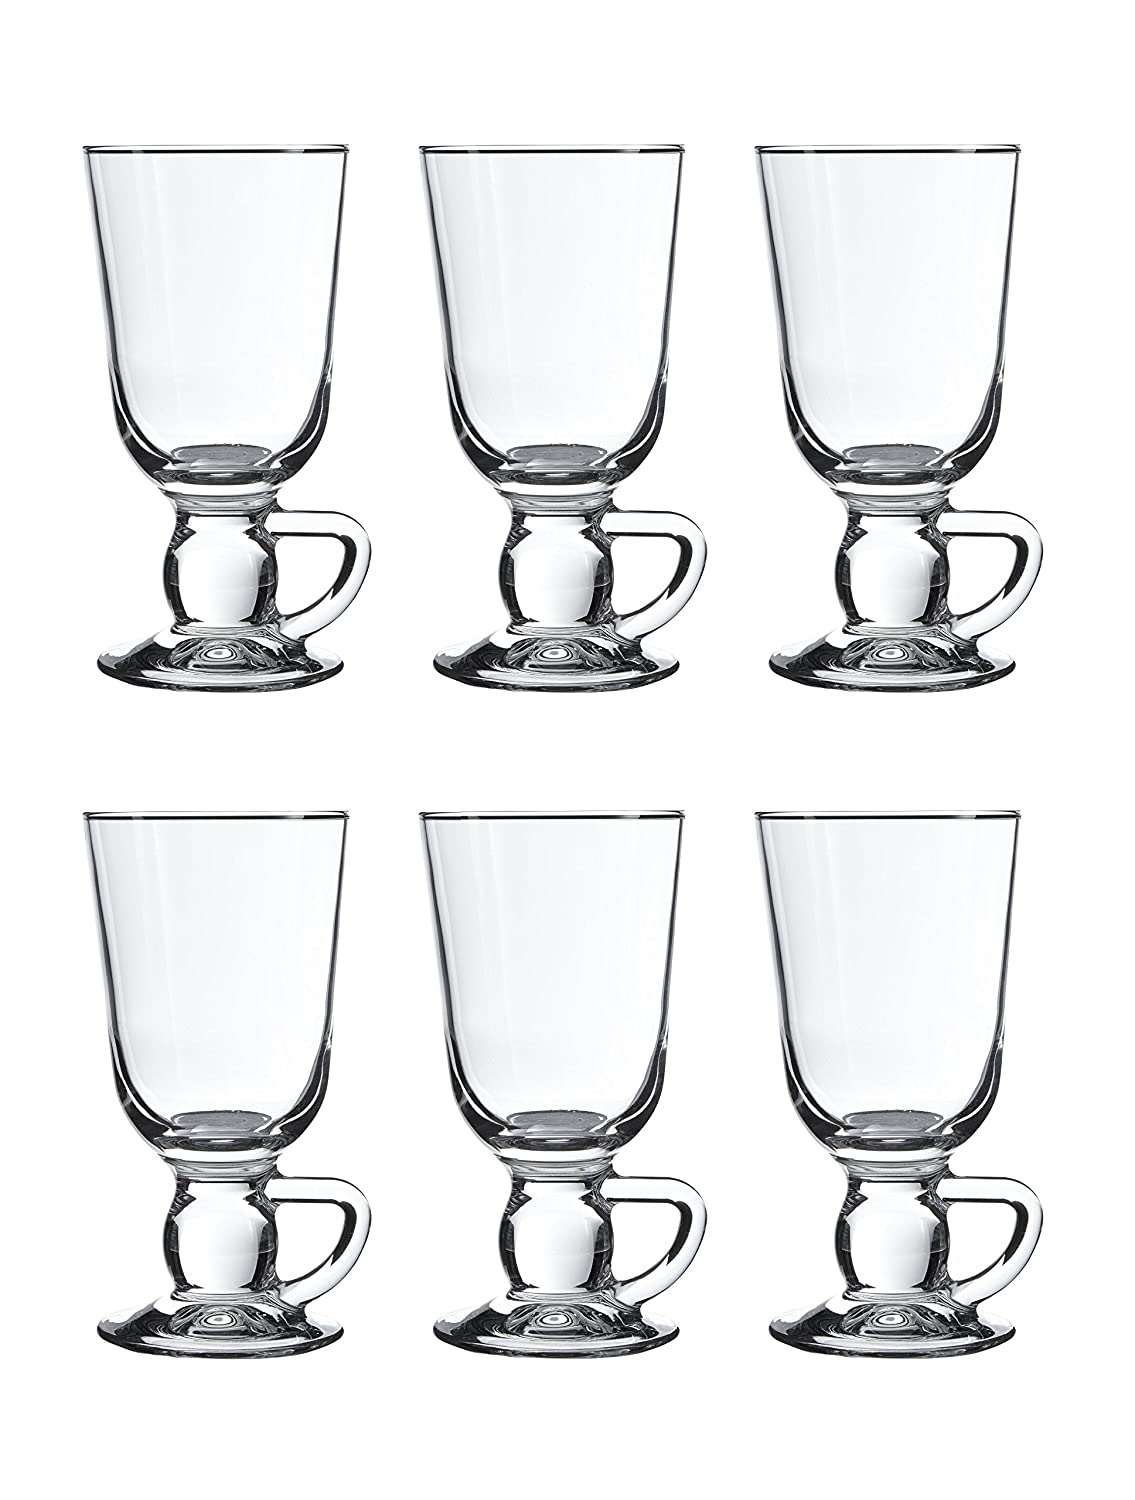 Pasabahce 44109 Irish Coffee / Punch / Mulled Wine / Hot Chocolate Glasses, 280 ml, Set of 6